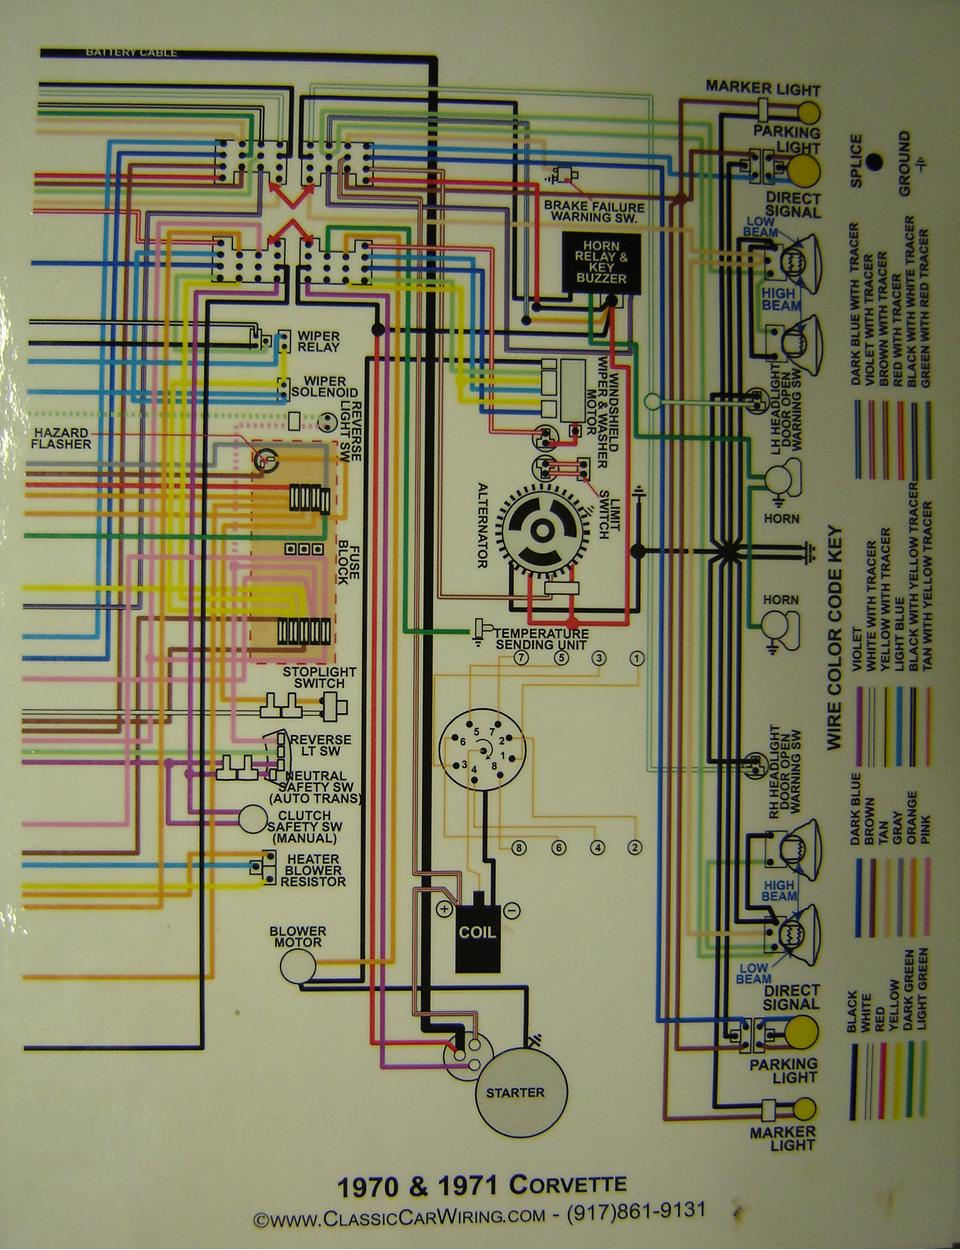 wiring diagram further diagram of 1984 corvette wiper wiring on c4 1962 C10 Chevy Truck Wiring Diagram